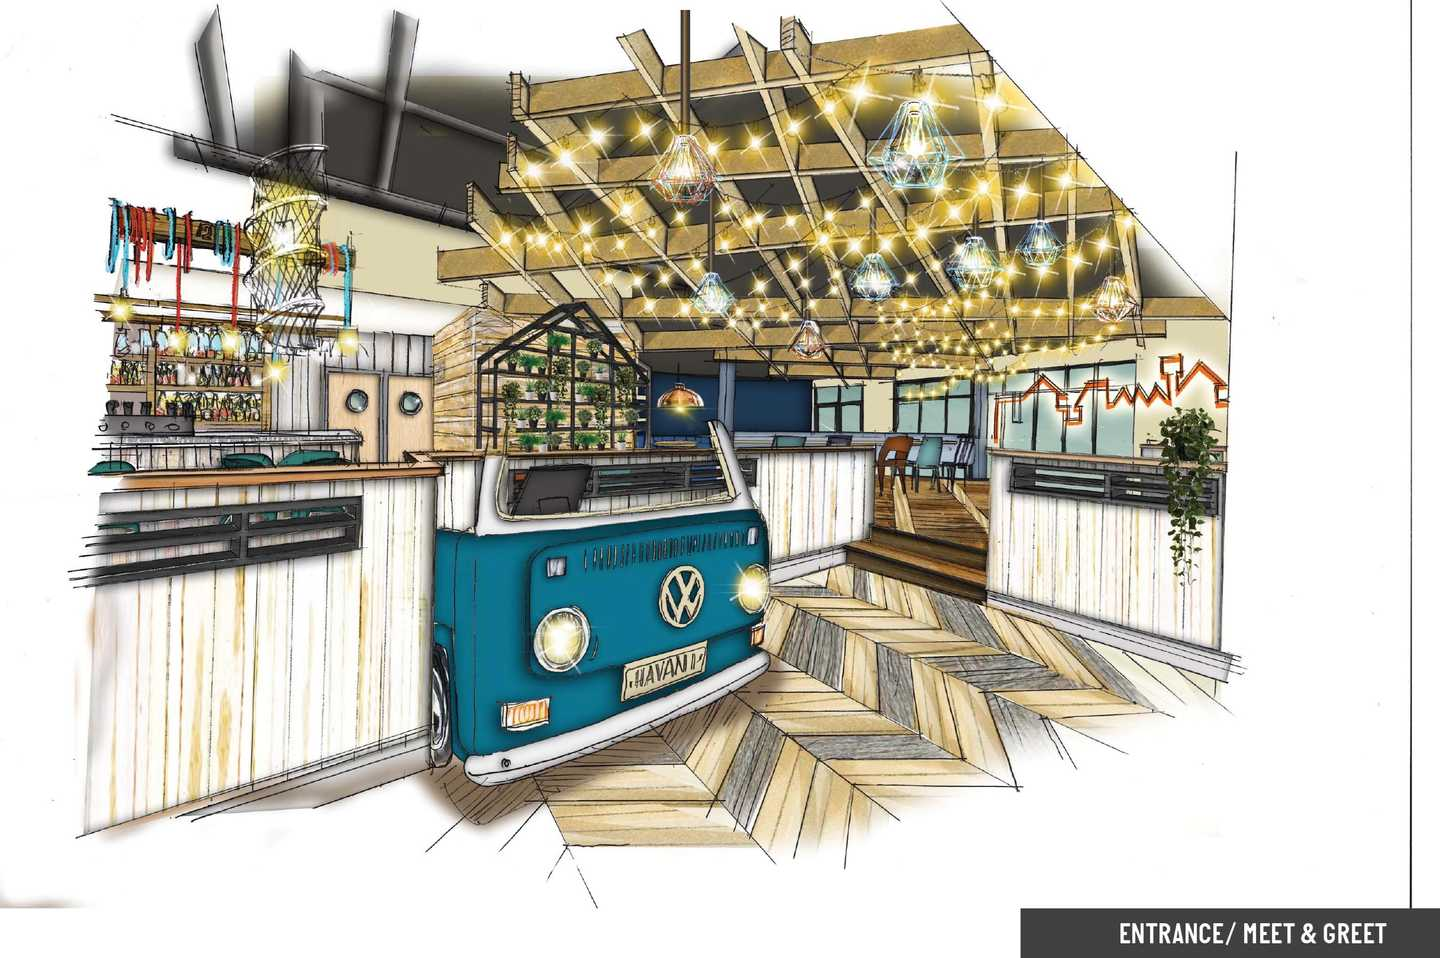 NEW - The Coast House bar and grill